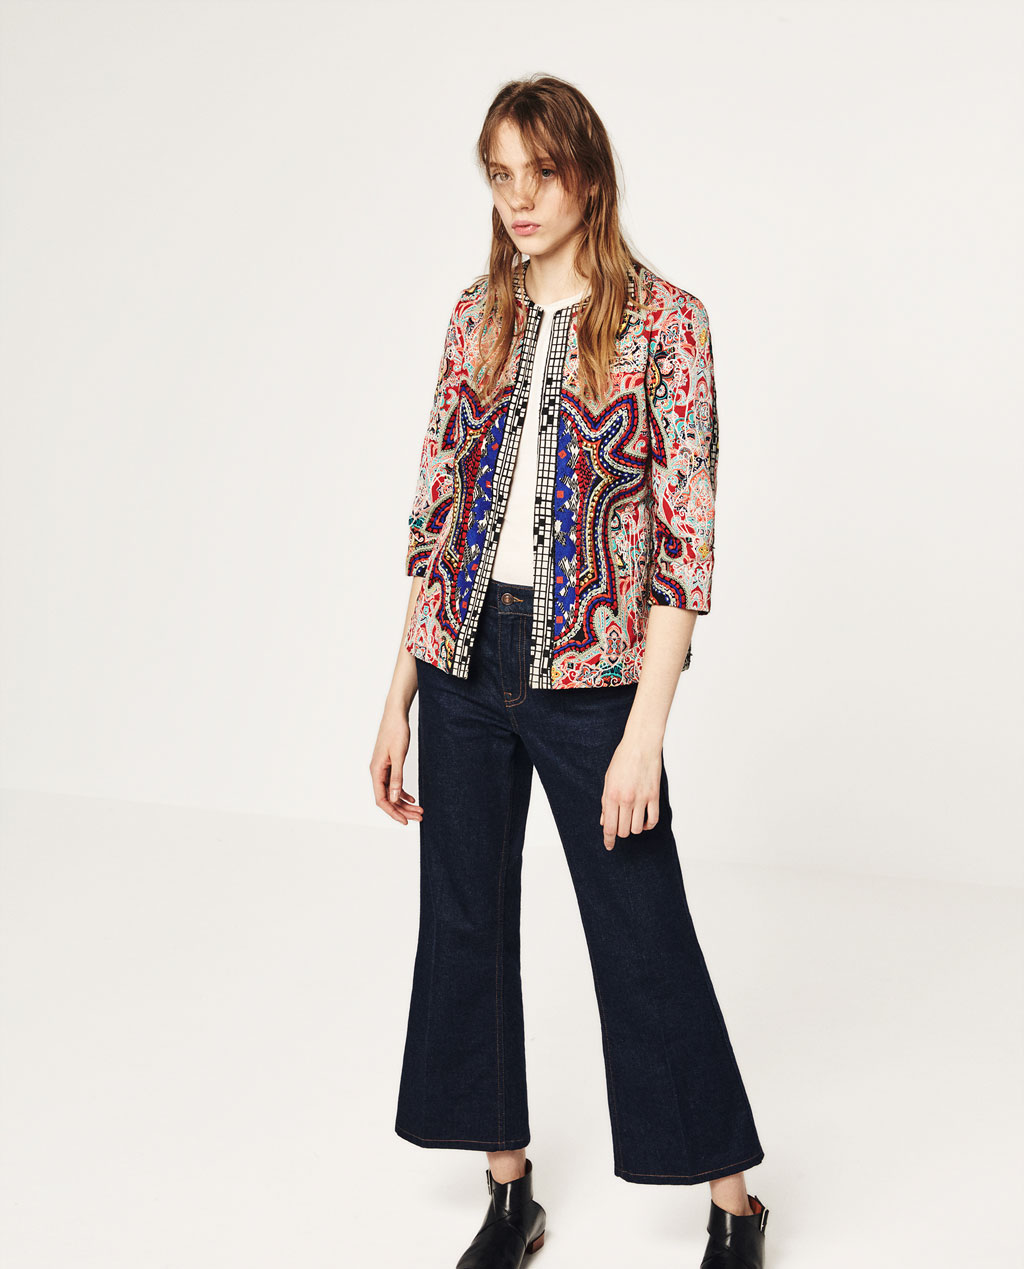 EMBROIDERED JACKET ZARA $149.00